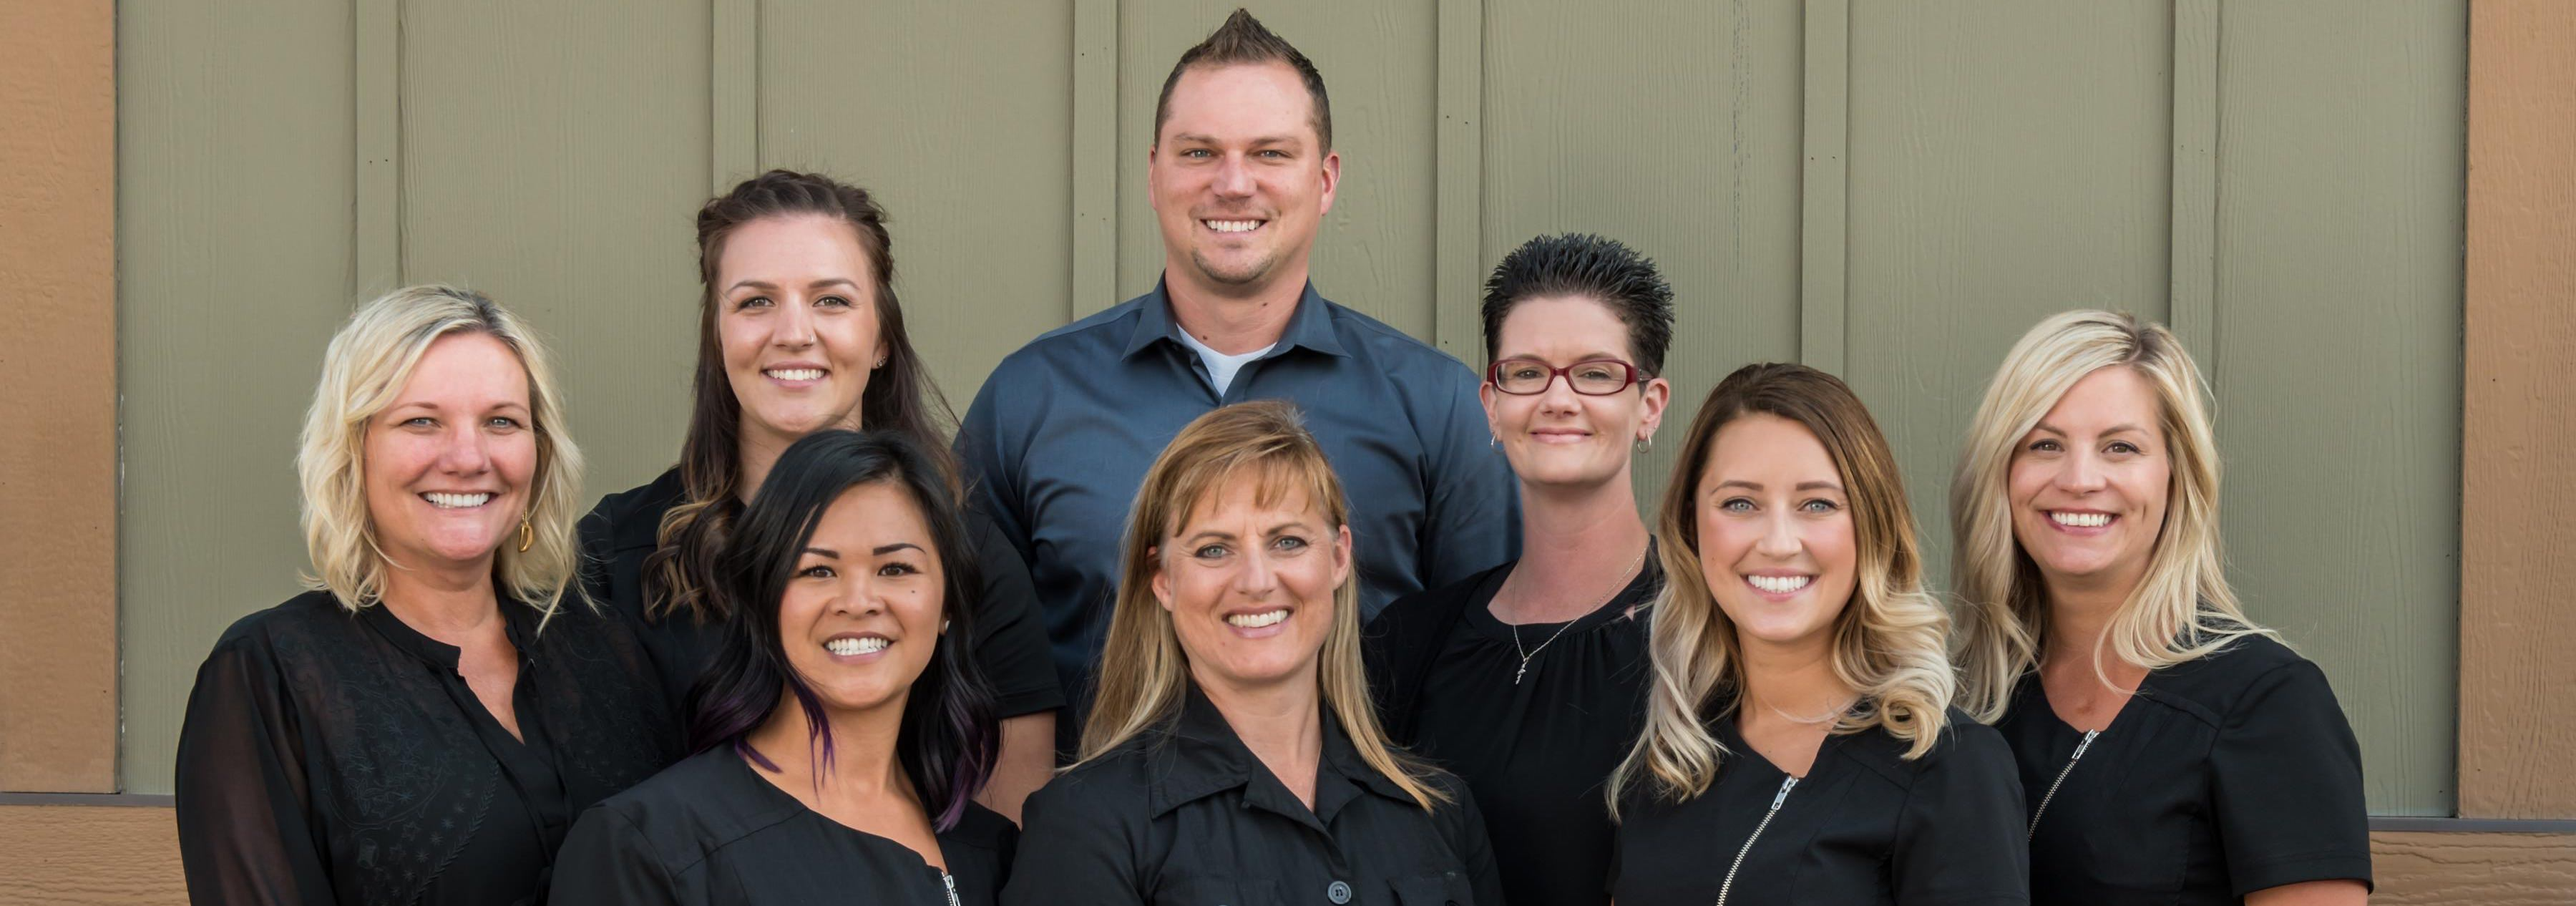 calgary-dental-360-team